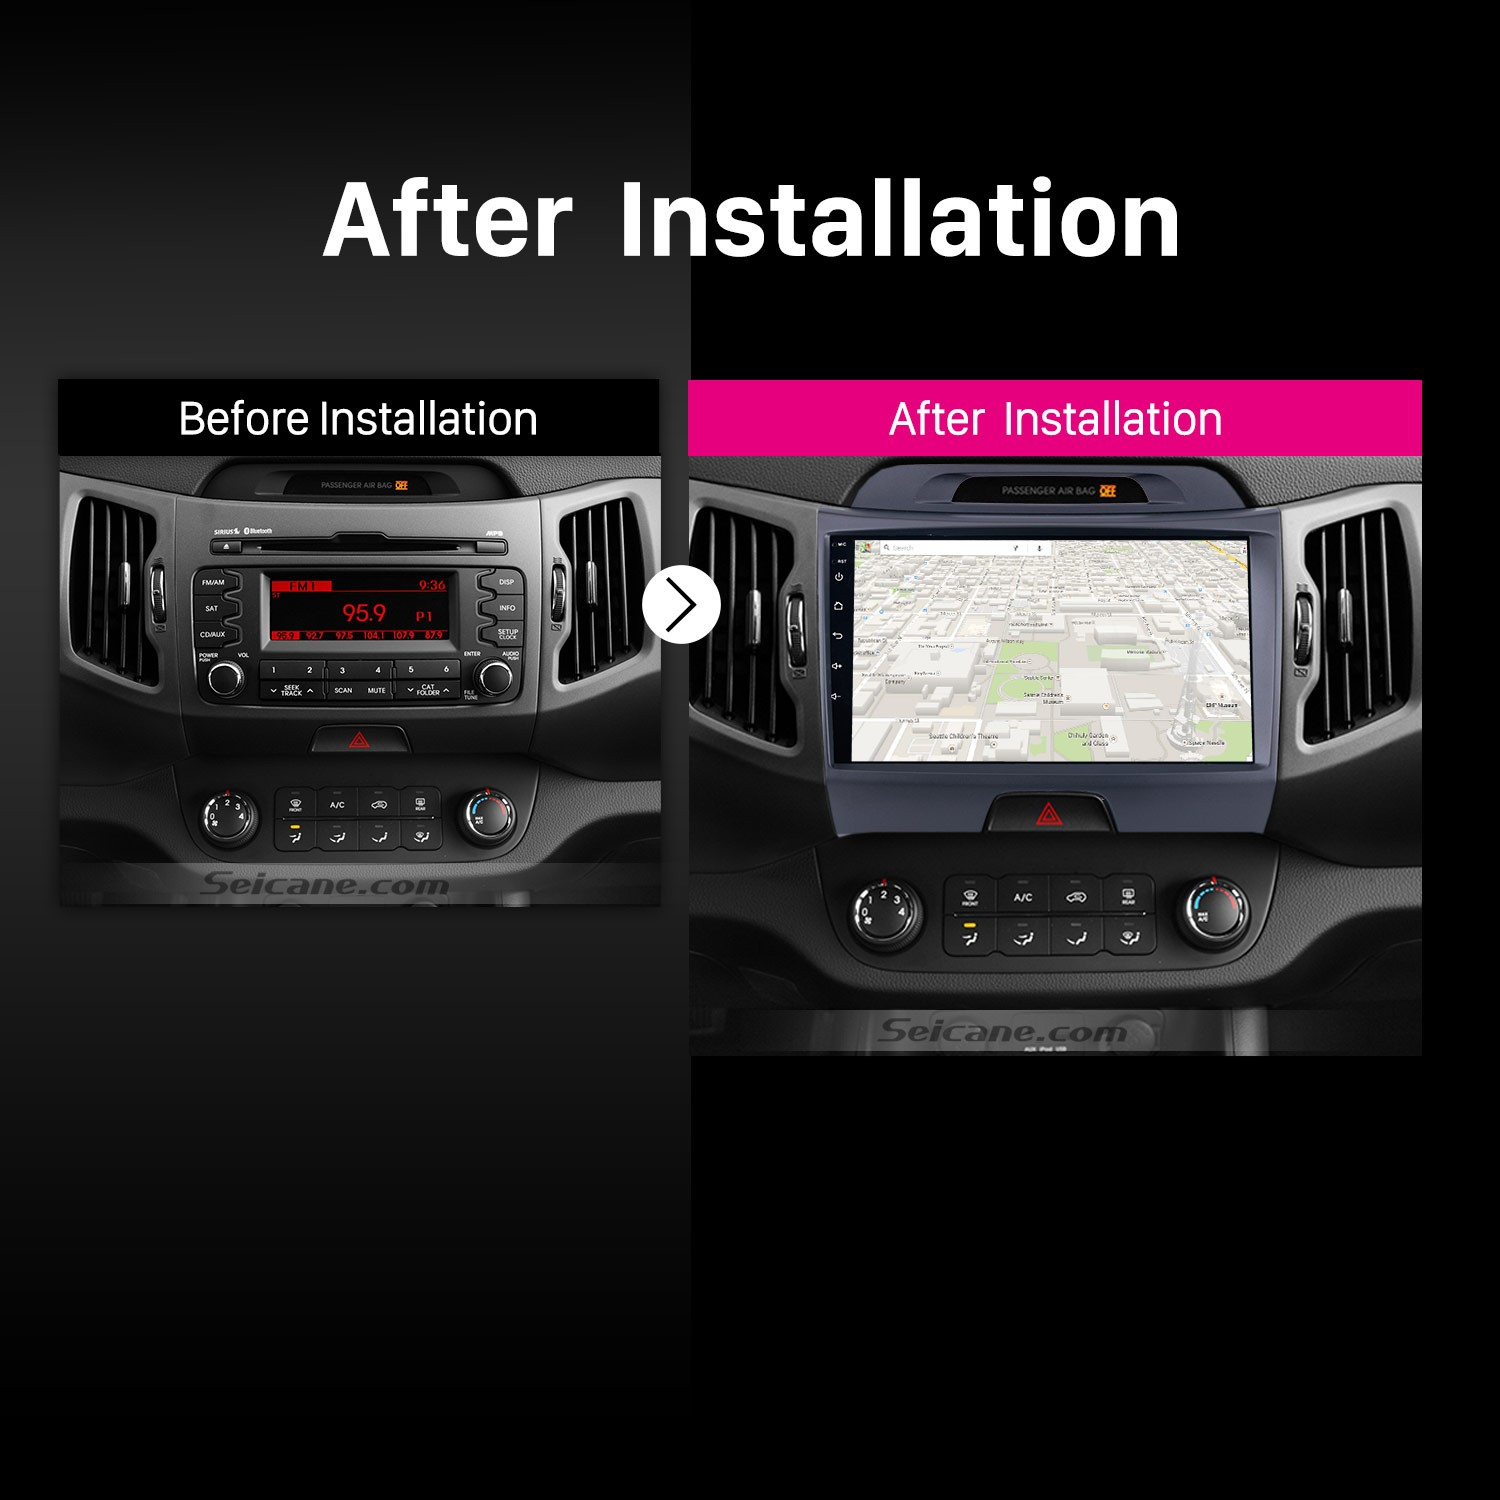 2010 2011 2012 2013-2015 KIA Sportage car radio after installation